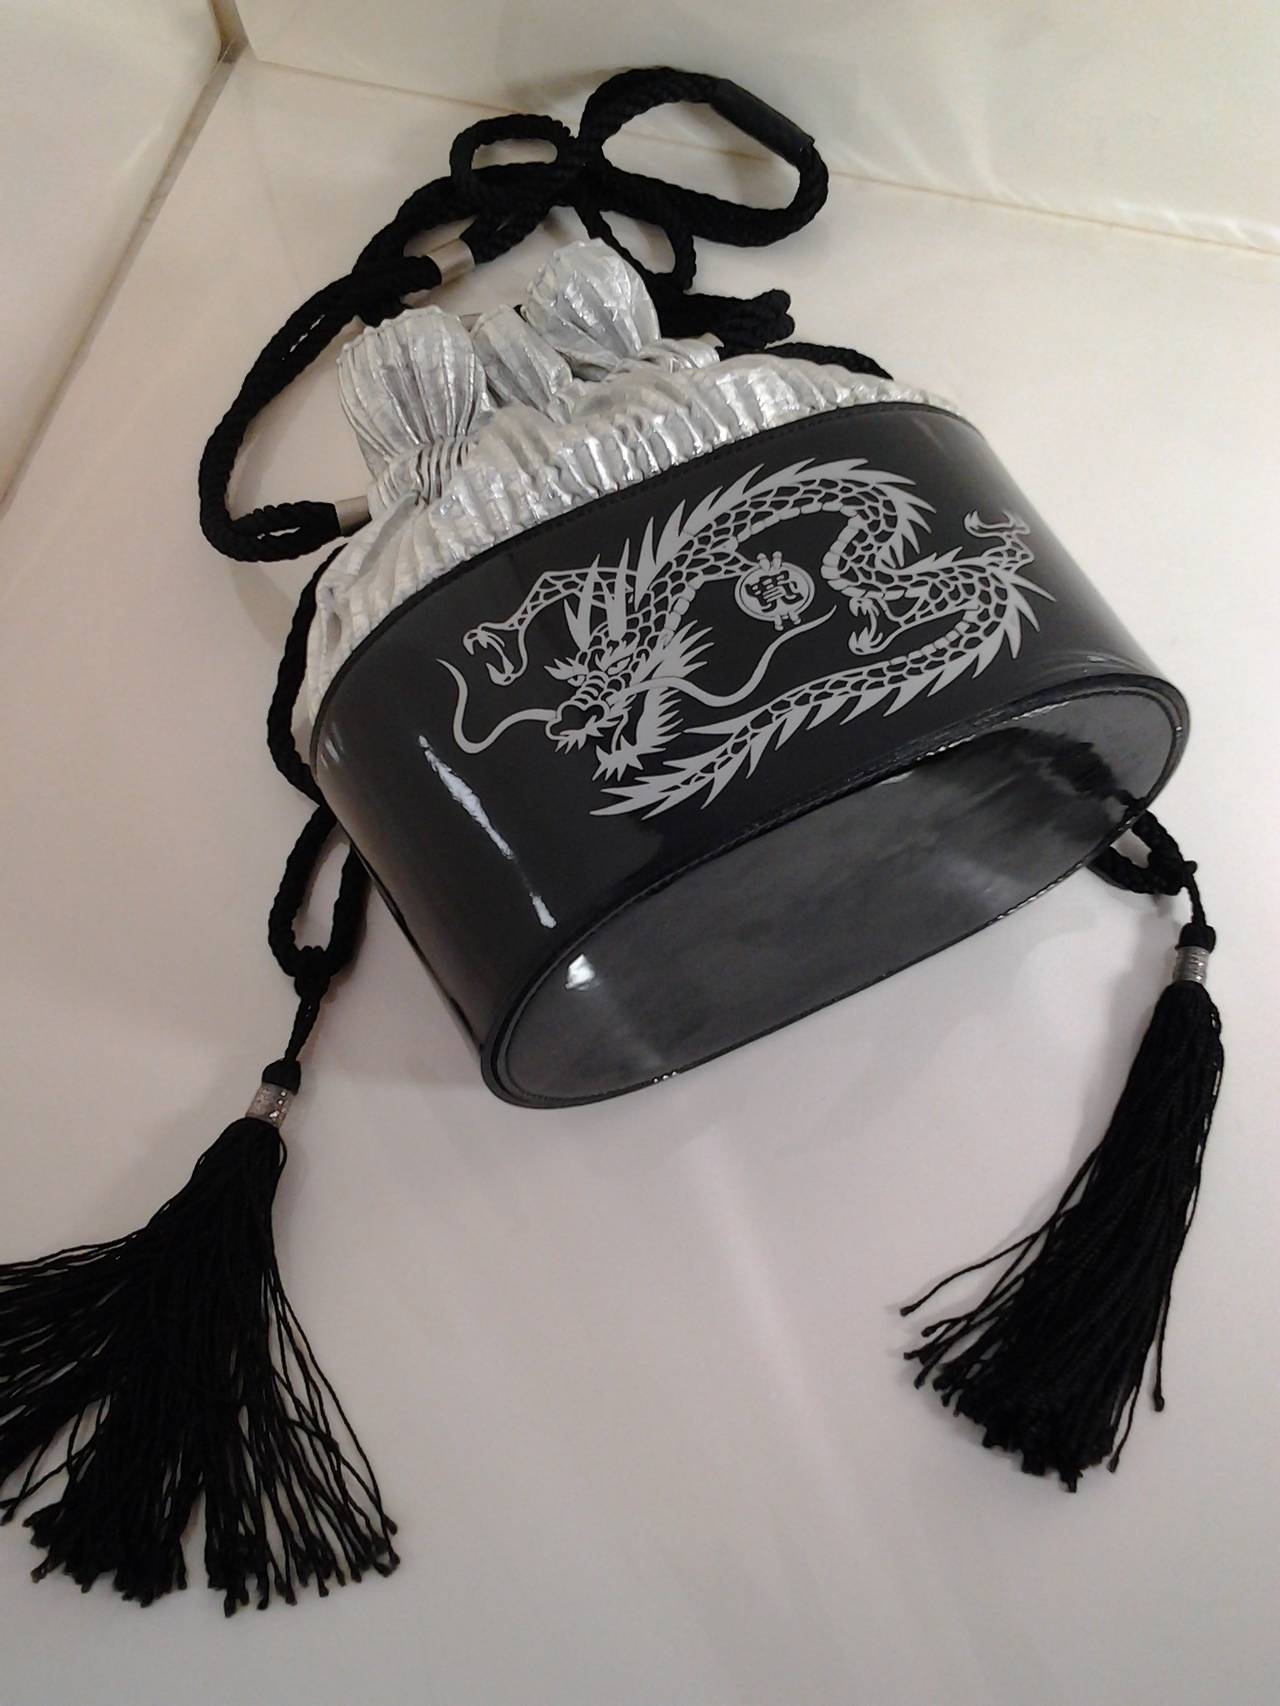 1980s Kansai Yamamoto Patent Leather and Silver Lame Dragon Draw String Bag In Excellent Condition For Sale In San Francisco, CA